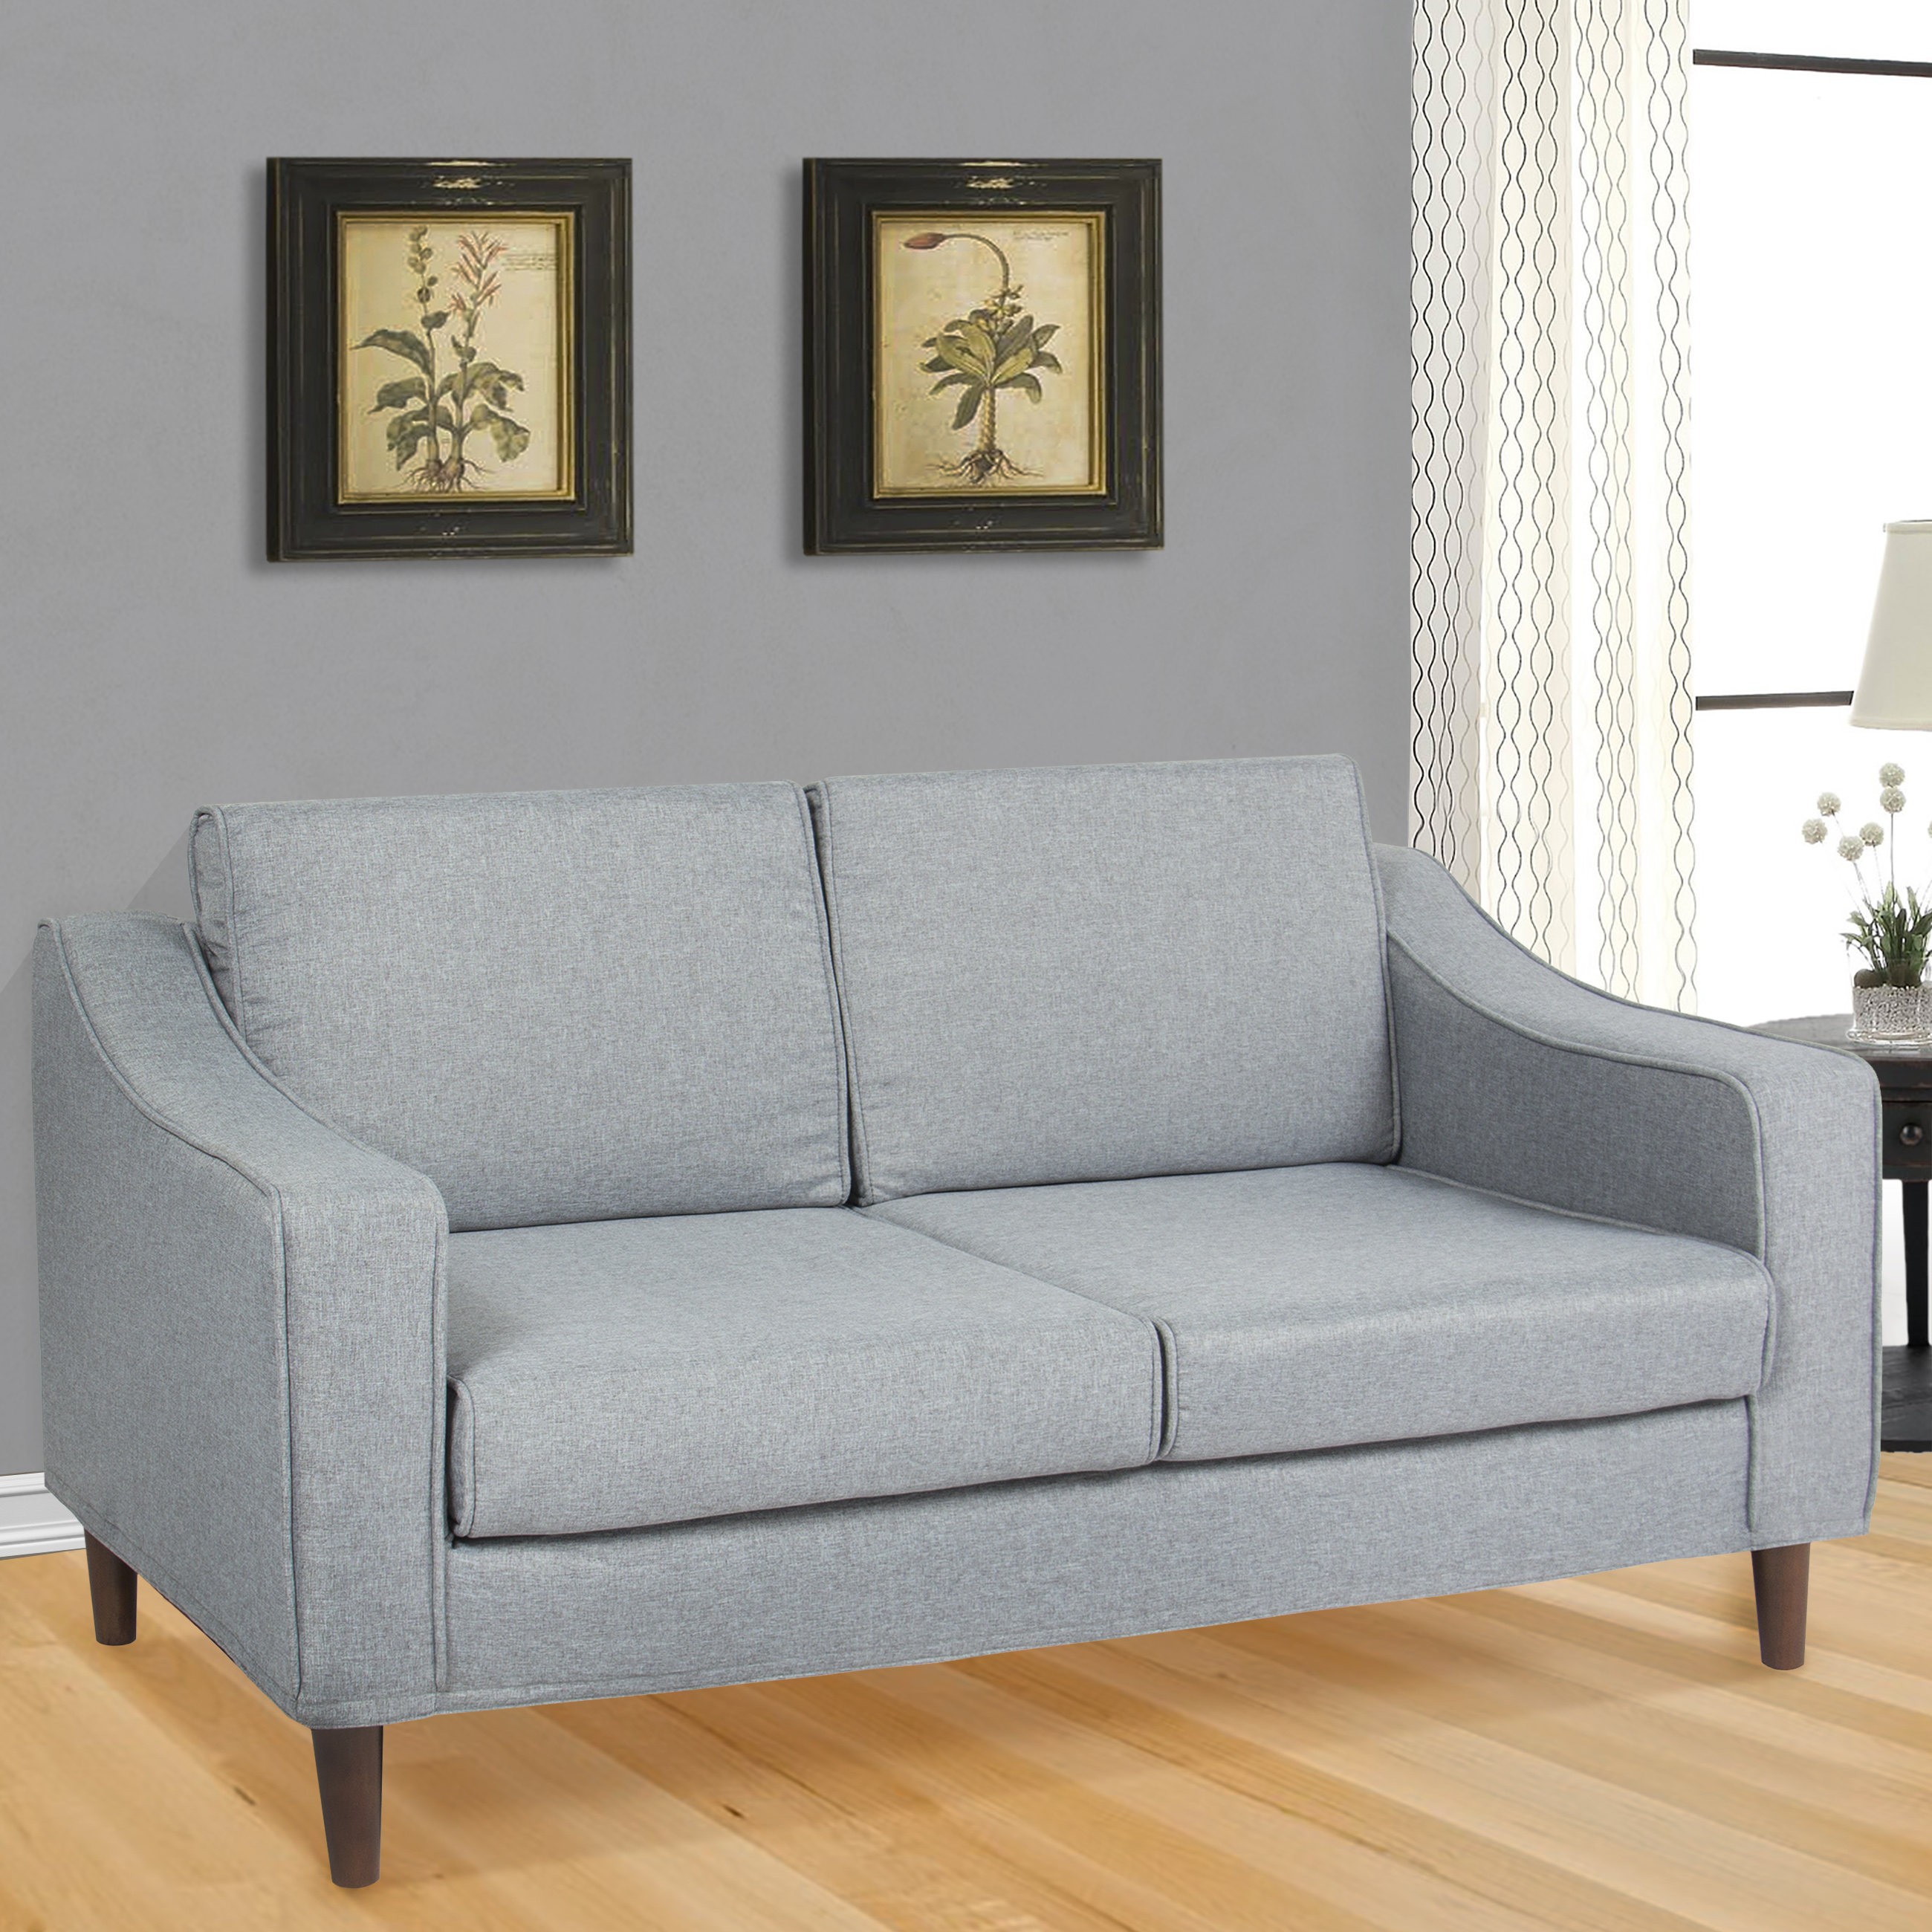 Best choice products modern furniture loveseat sofa living room couch chaise lounge chair gray walmart com